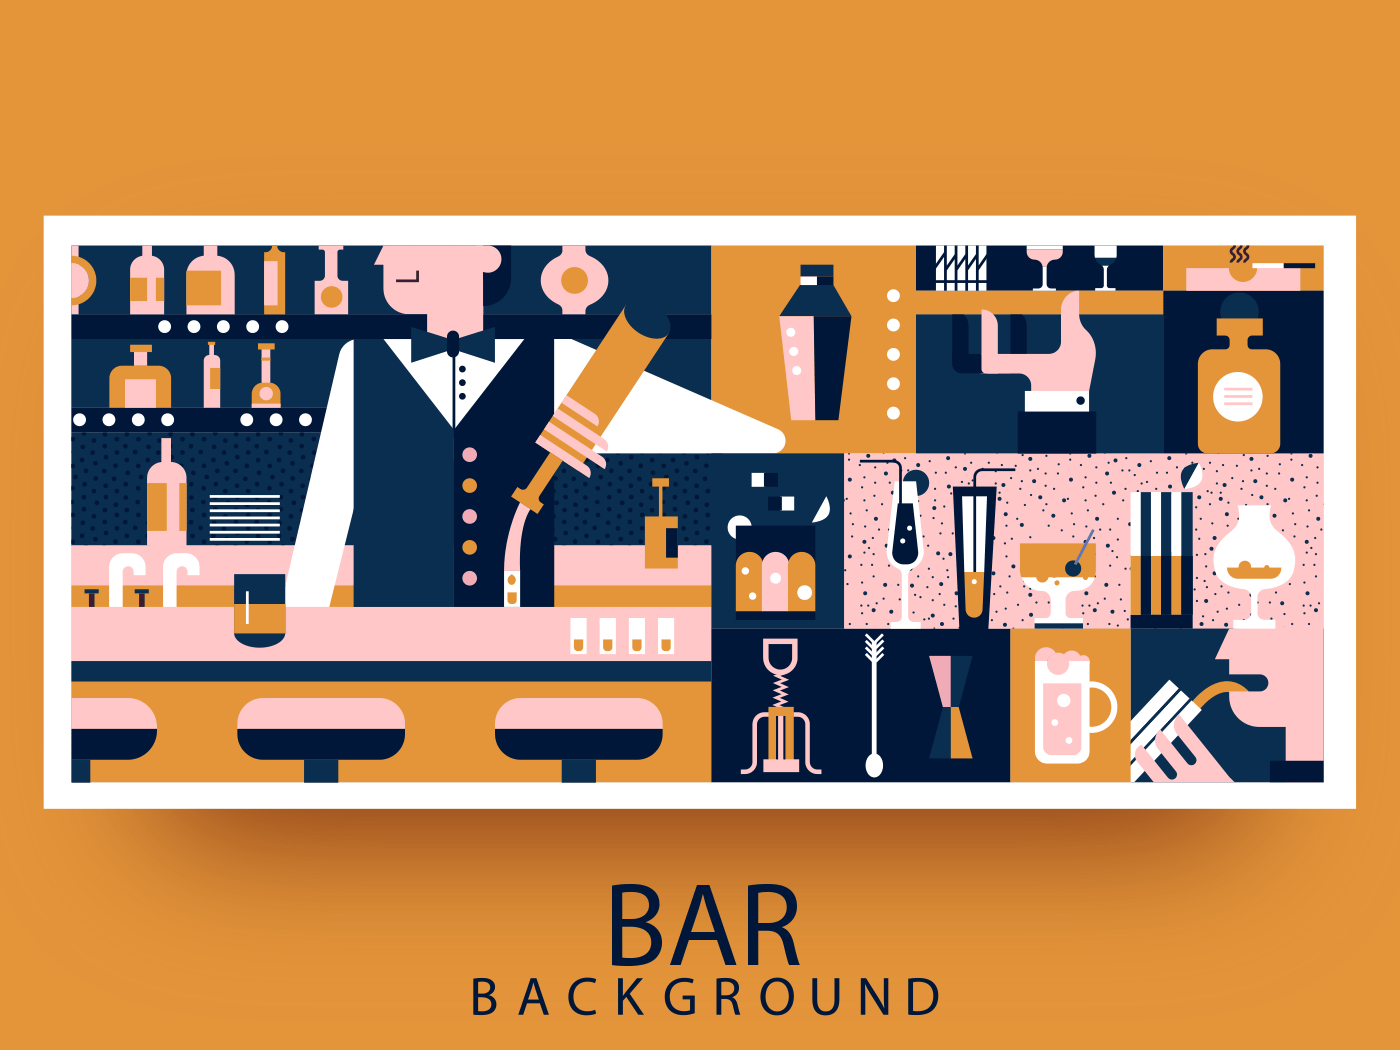 Bar and bartender abstract background